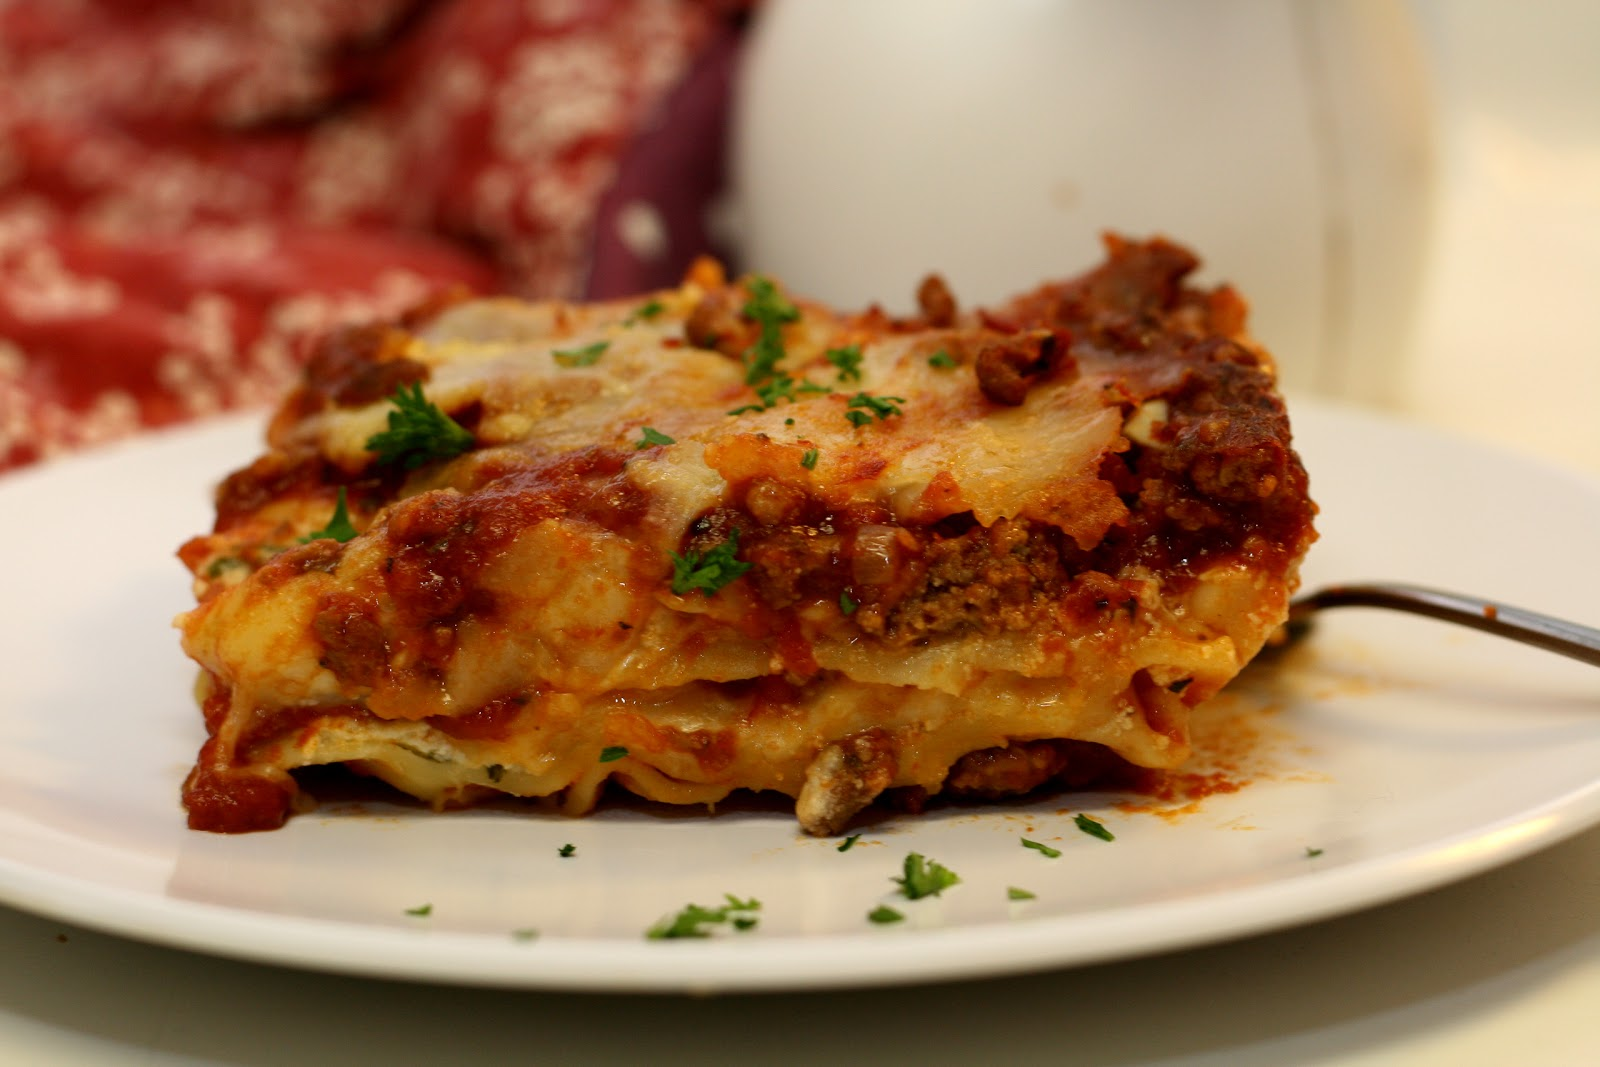 The World's Best Lasagna - What Is Cooking Now?